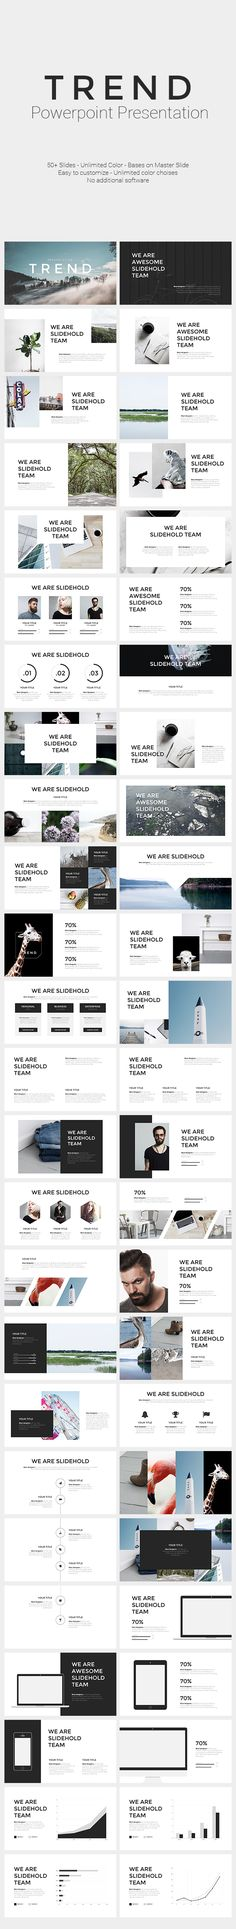 TREND | PowerPoint Template - #PowerPoint #Templates Presentation Templates Download here: https://graphicriver.net/item/trend-powerpoint-template/19442944?ref=alena994